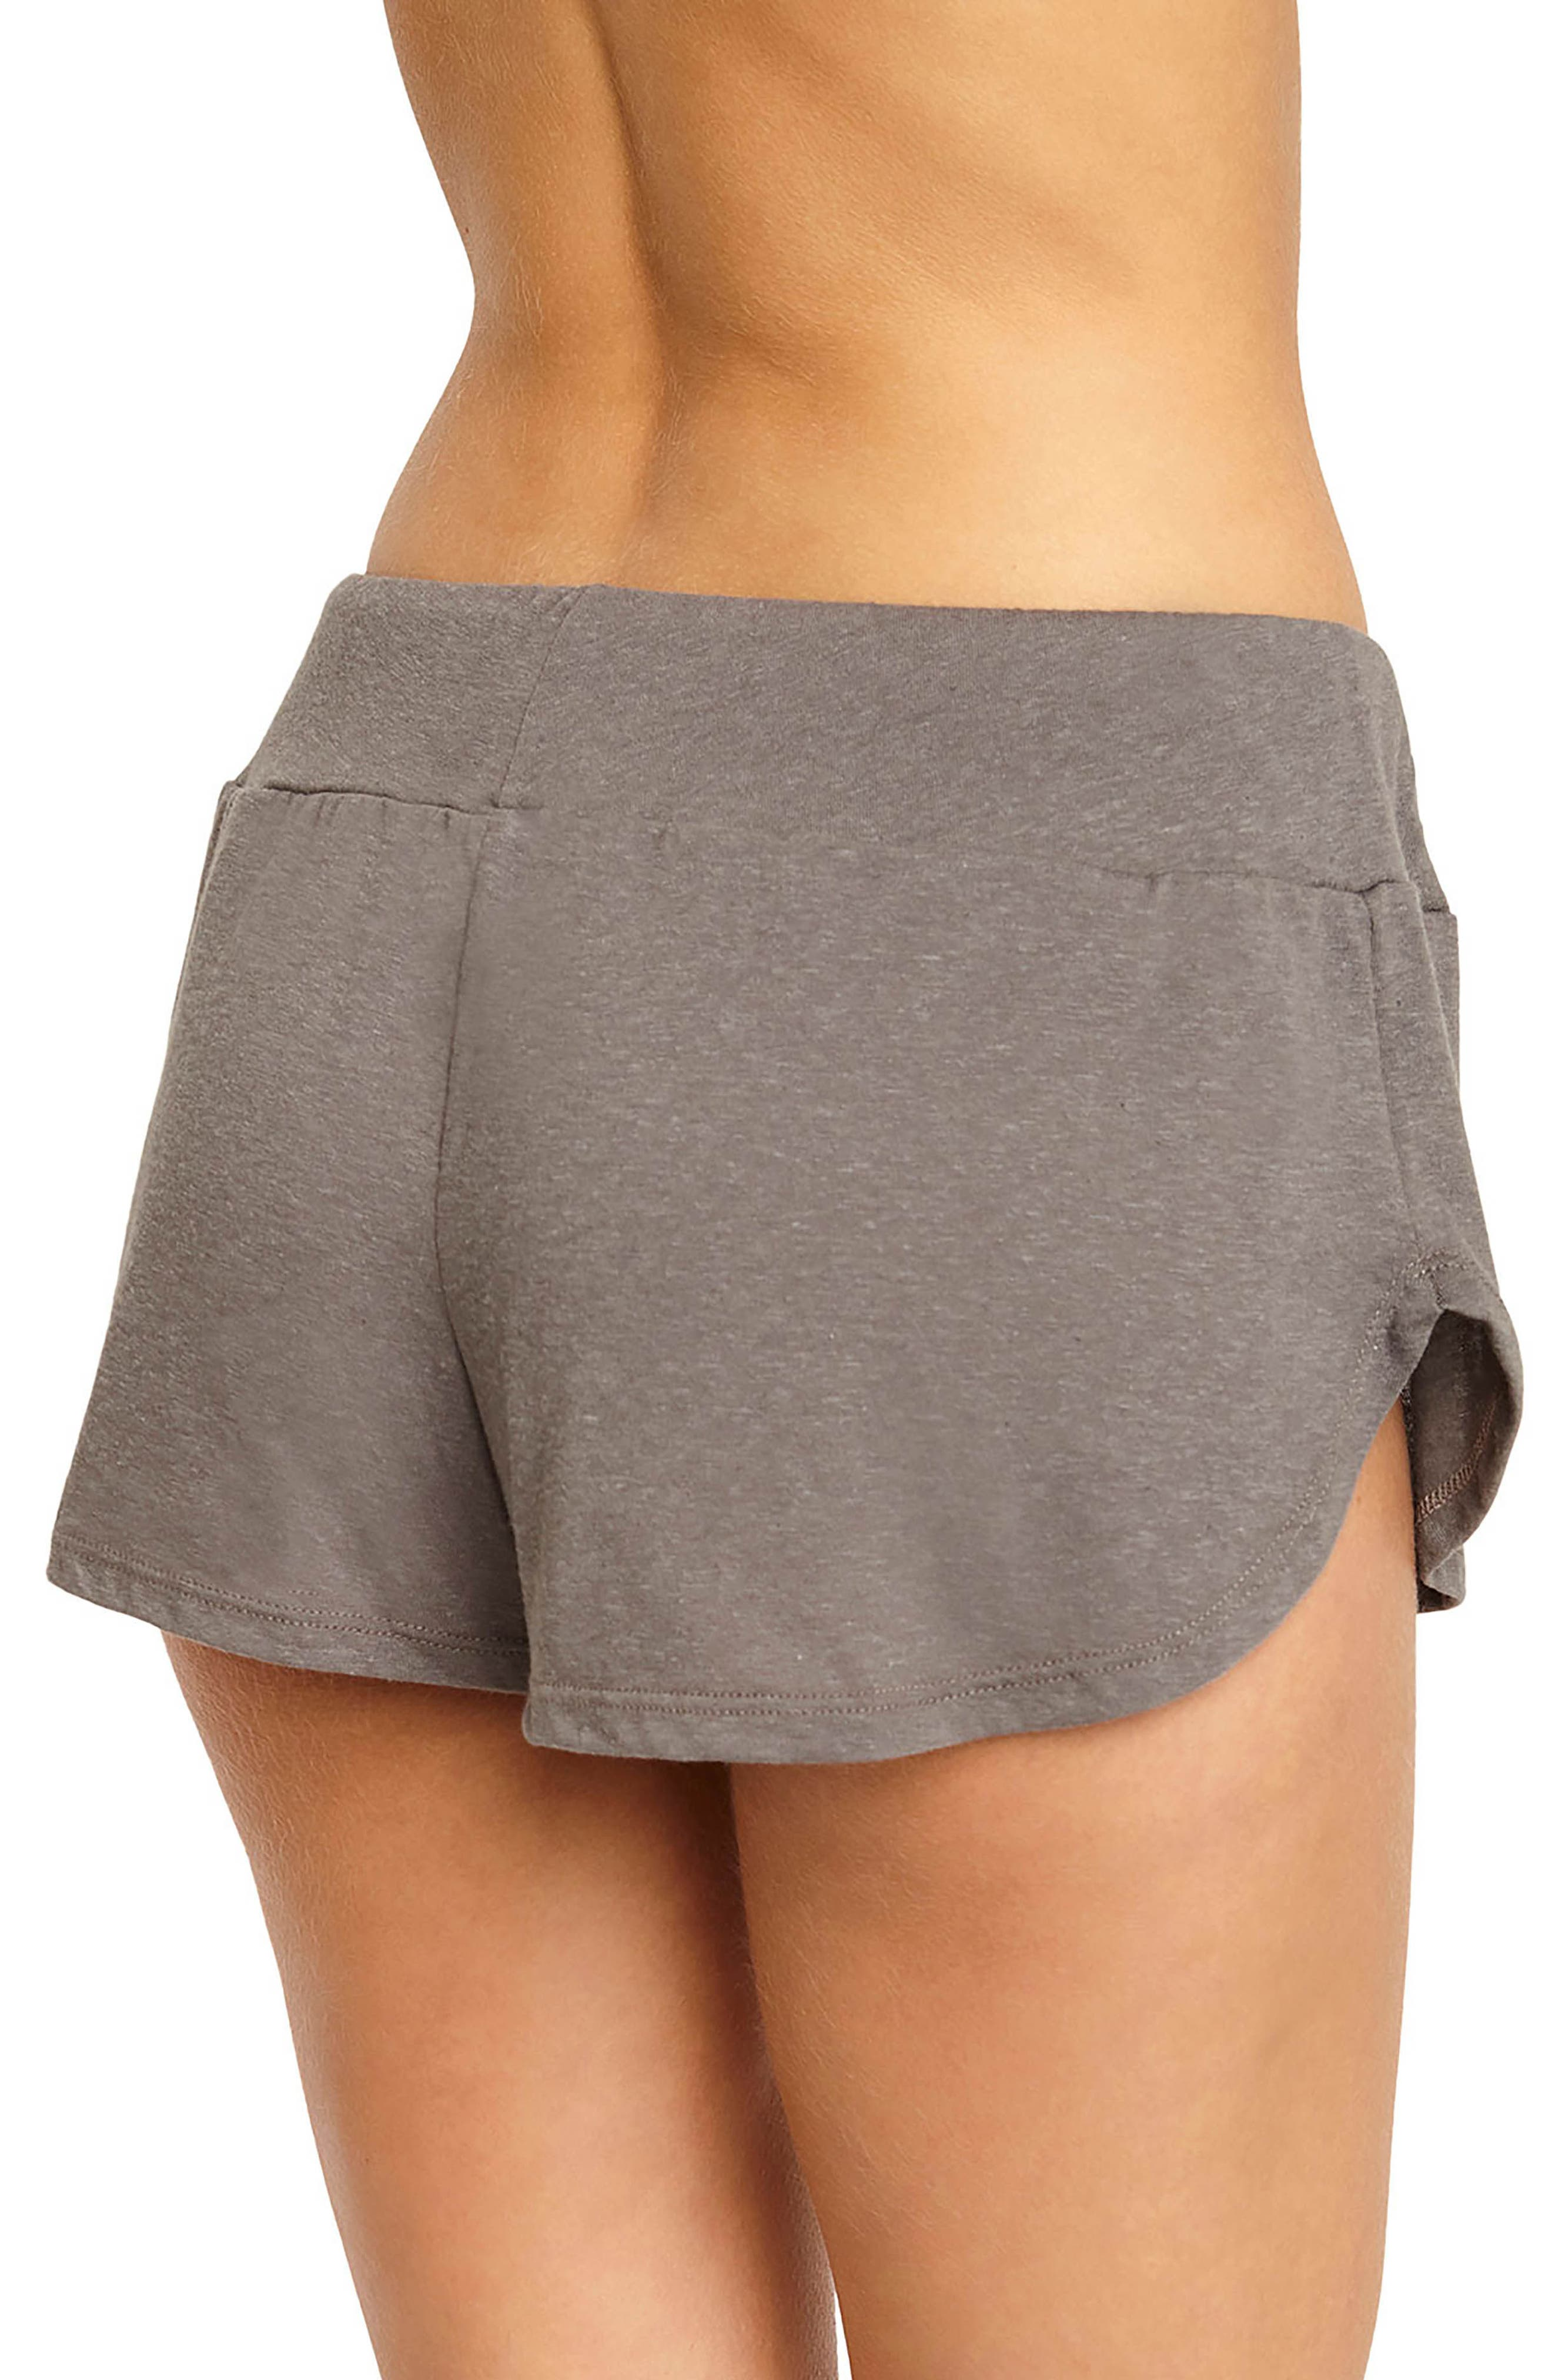 Alternate Image 2  - Eberjey Heather Knit Shorts